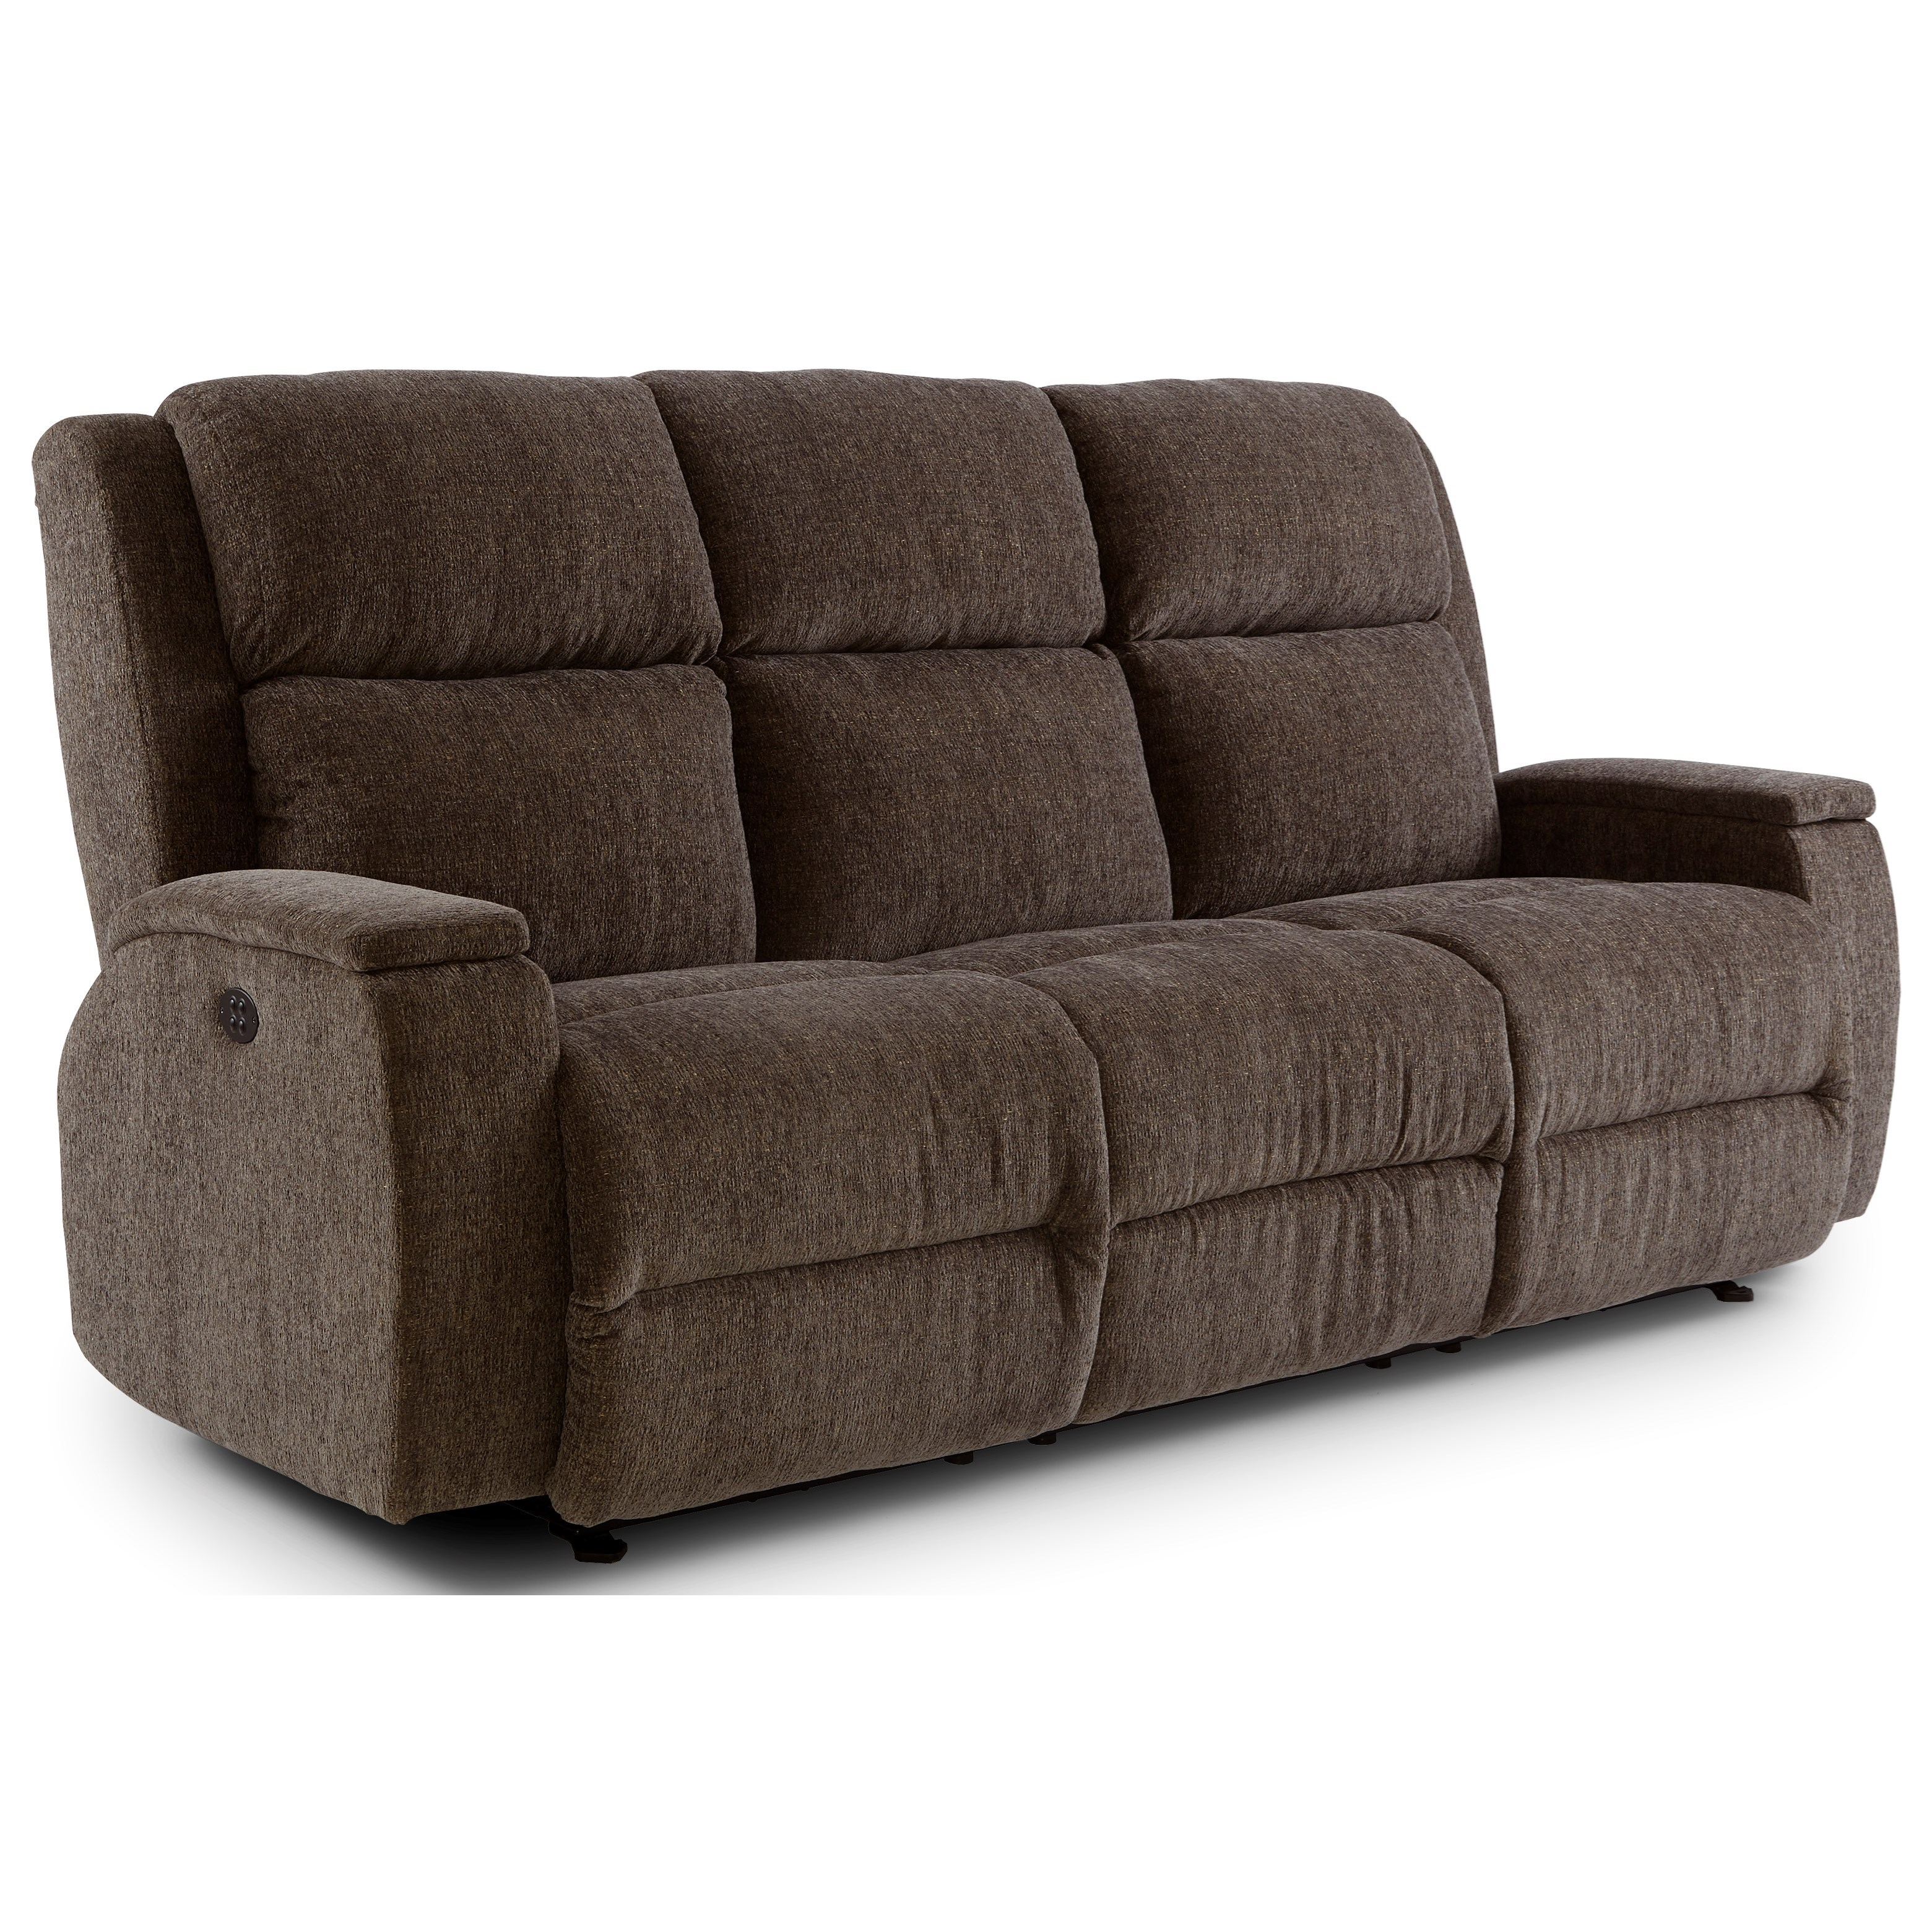 Best Home Furnishings Colton Power Walhugger Recl Sofa w/ Pwr Headrest - Item Number: S740RZ4 01